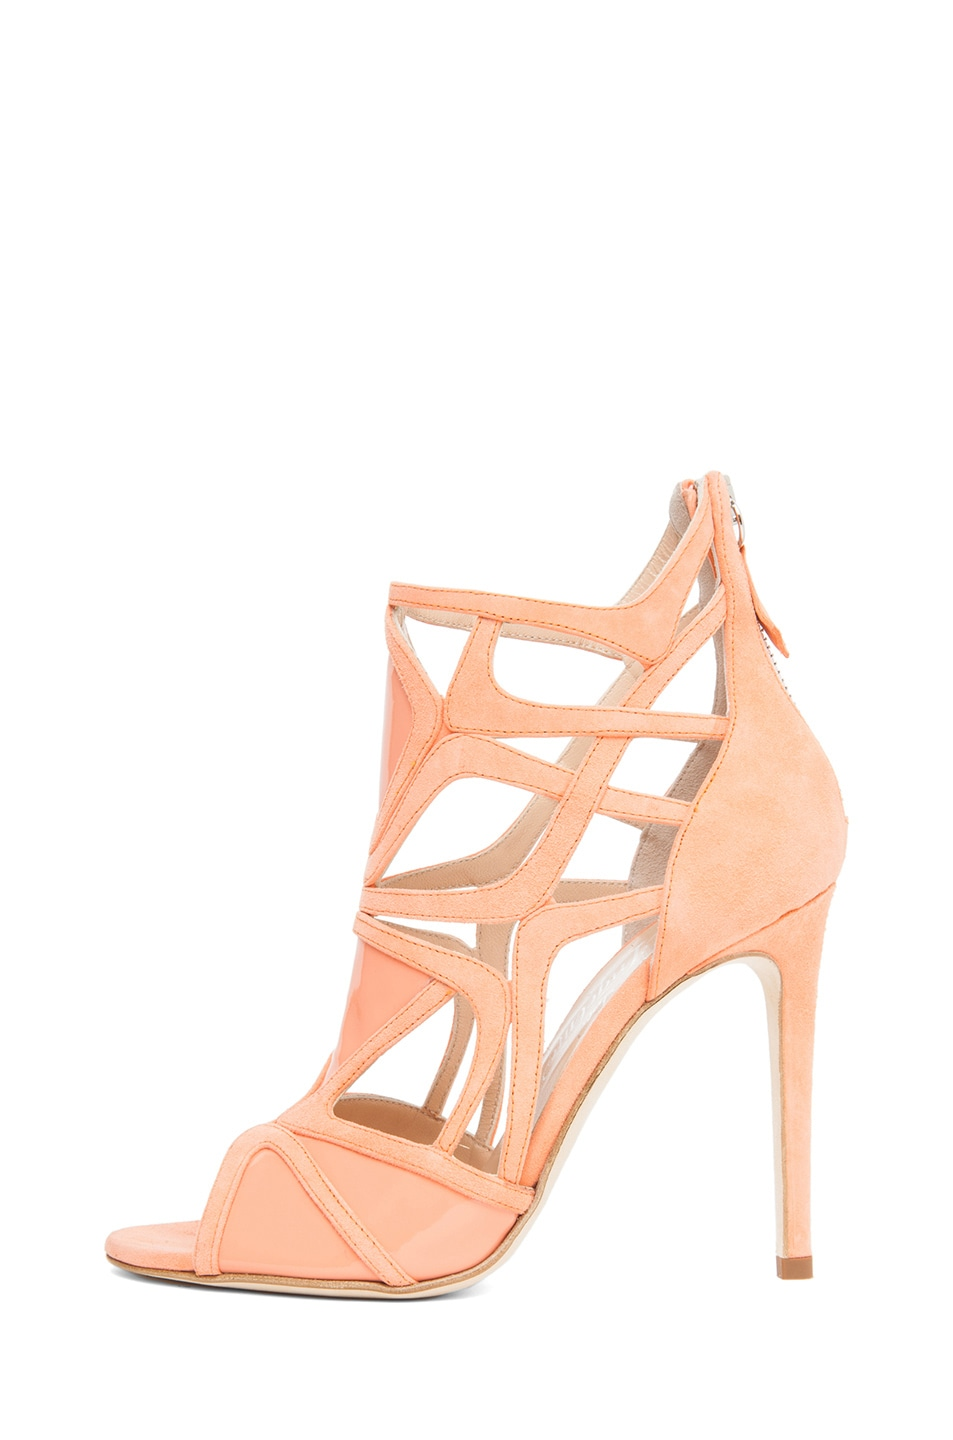 Image 1 of Alejandro Ingelmo Odessy Geometric Open Toe Bootie in Coral